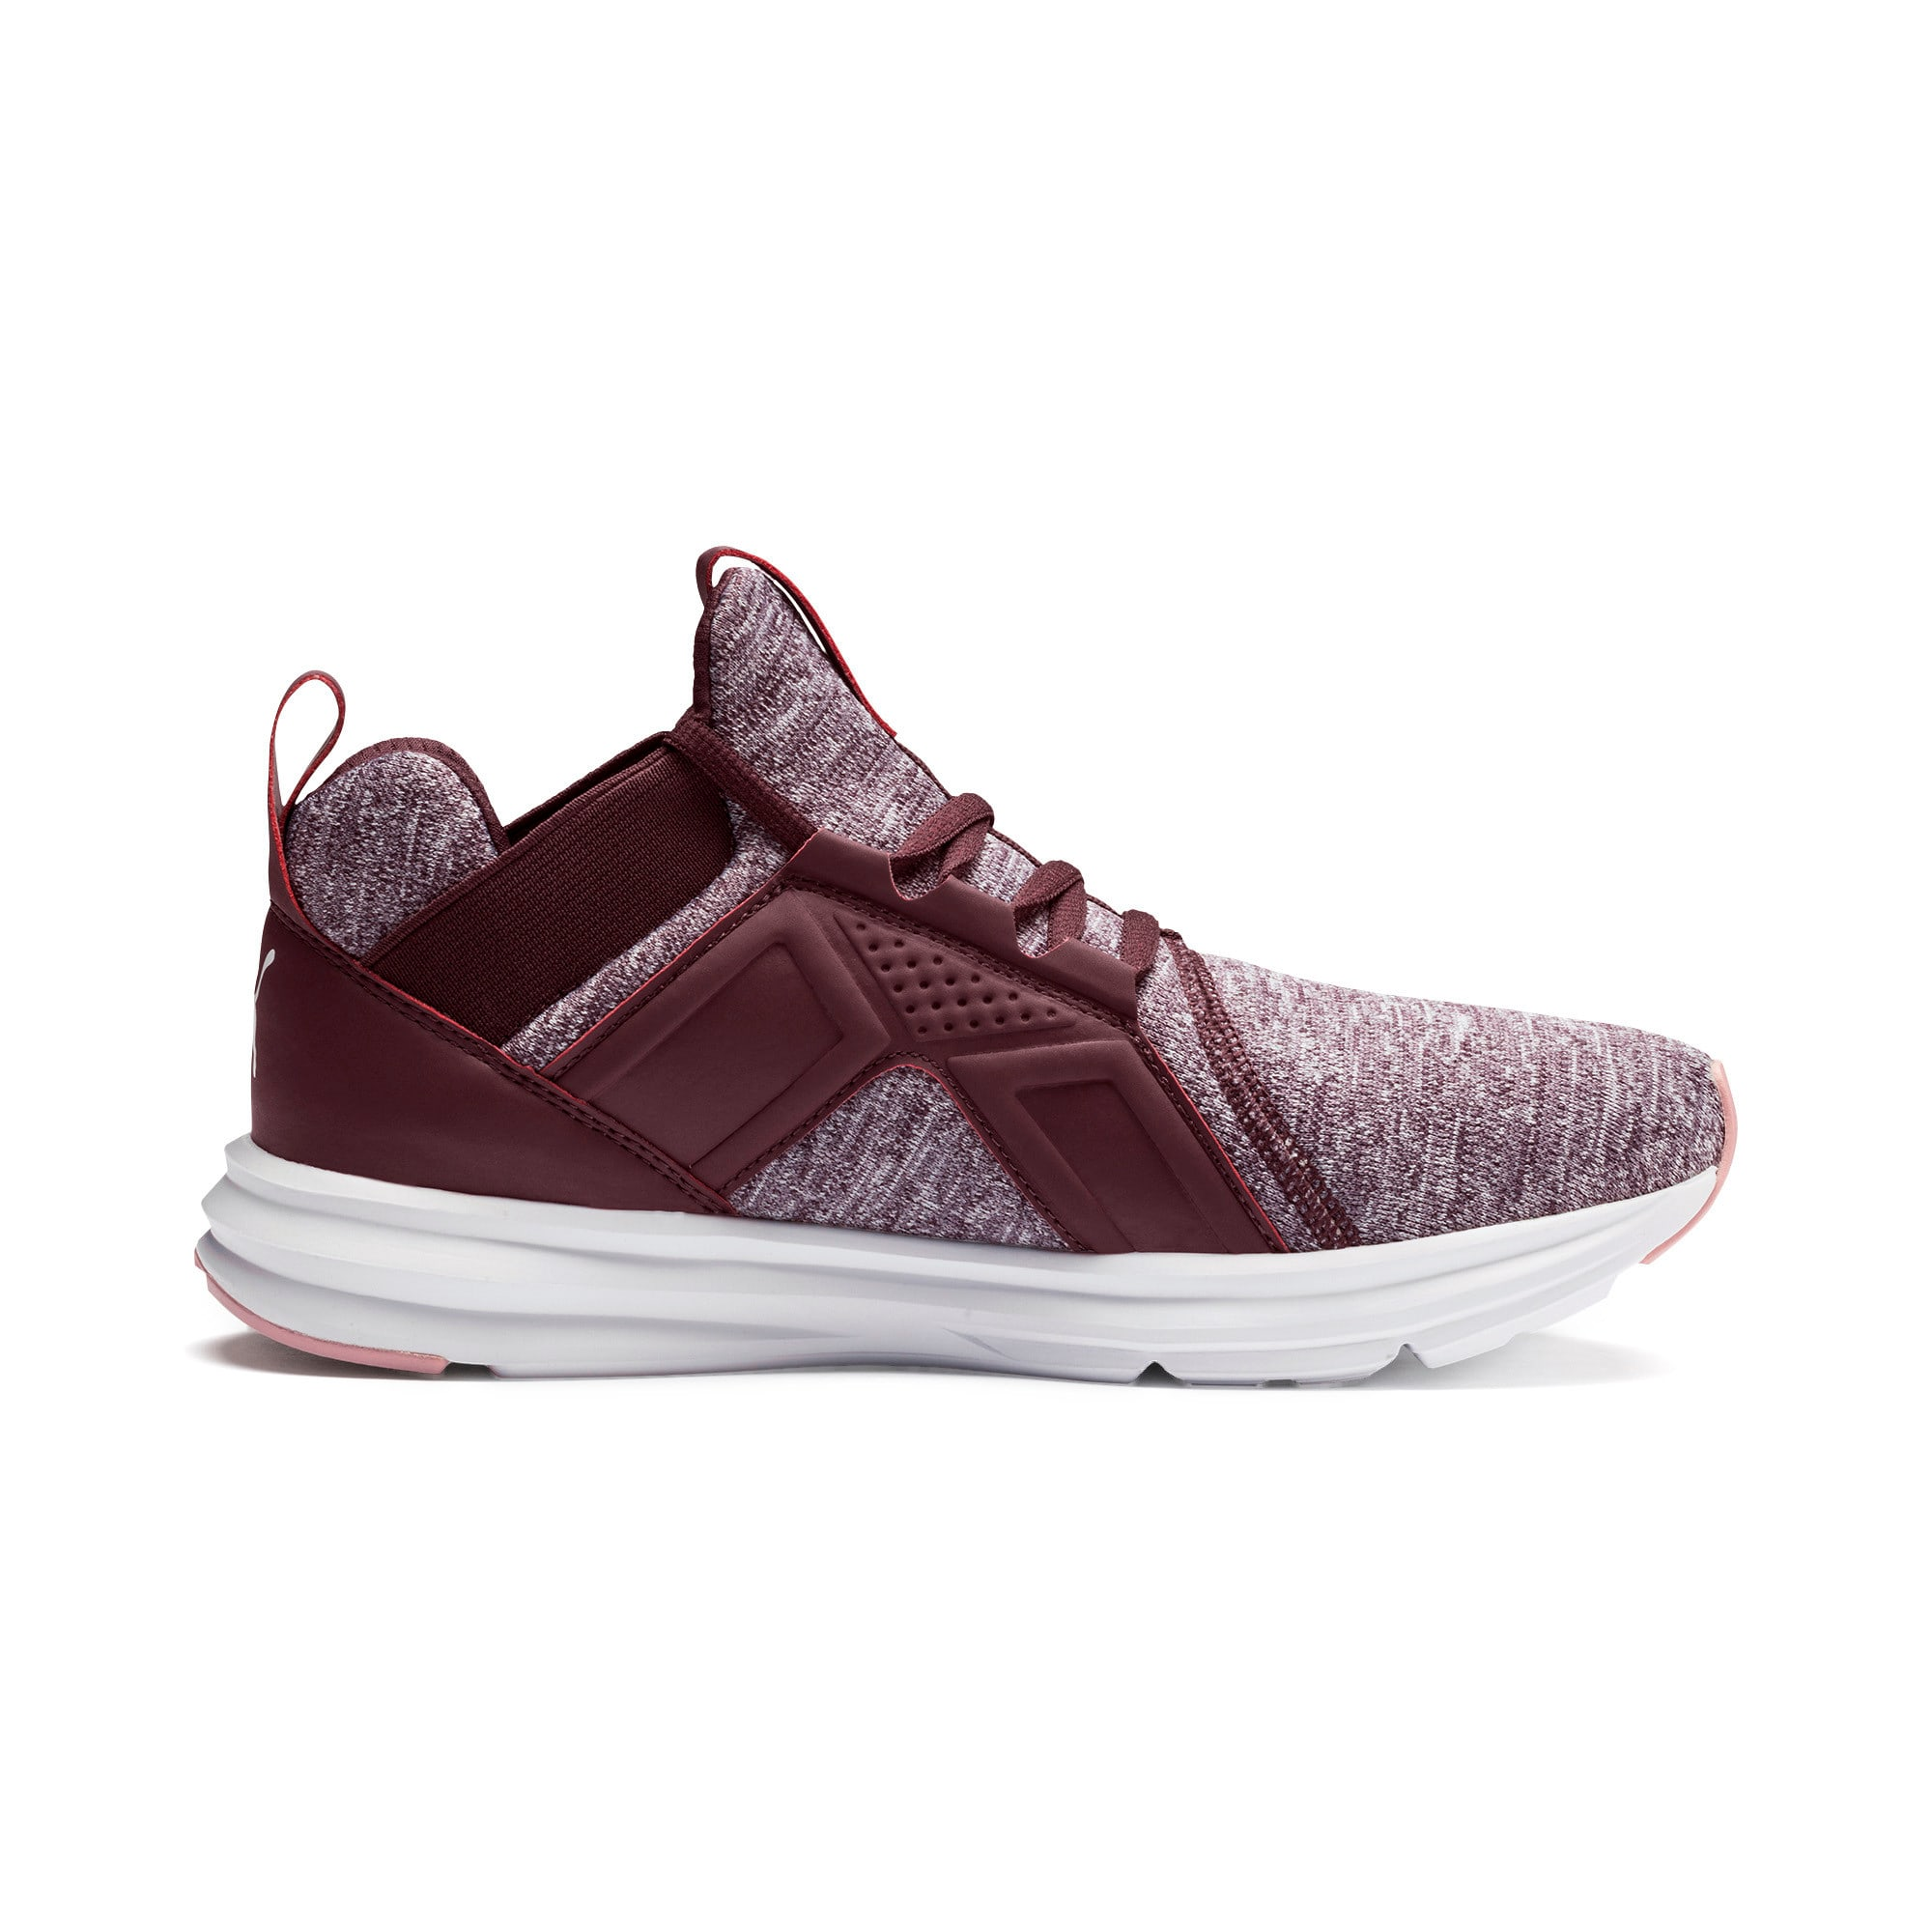 Thumbnail 7 of Enzo Heathered Women's Running Shoes, Wine-Bridal Rose-White, medium-IND